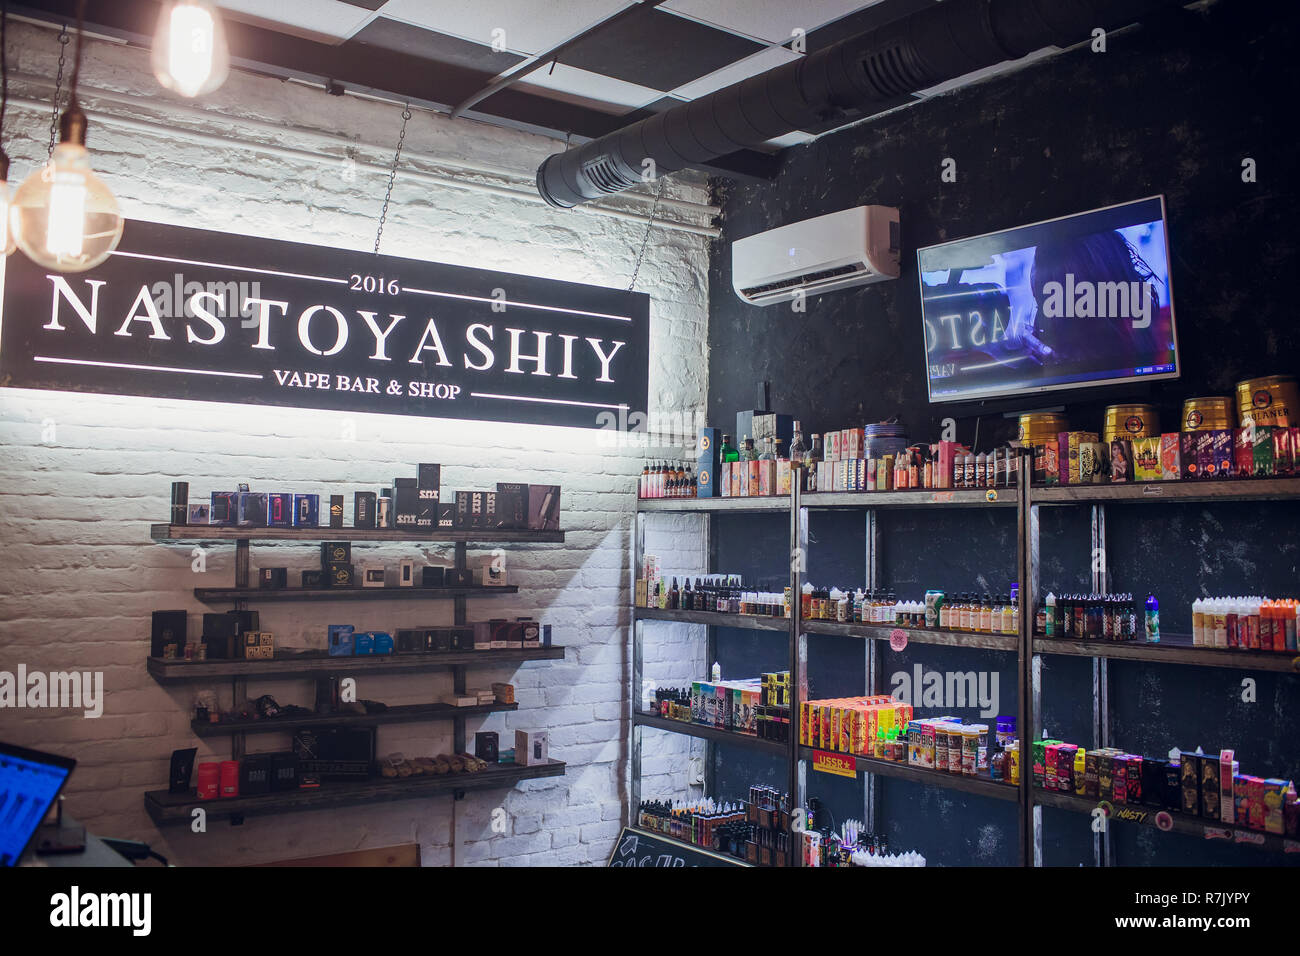 Ufa, Russia, South Vape Shop, 5 July, 2018: E-liquid e-juice High vape for electronic cigarette vaping device , on counter in smoke vapor in vape bar in bottles. - Stock Image